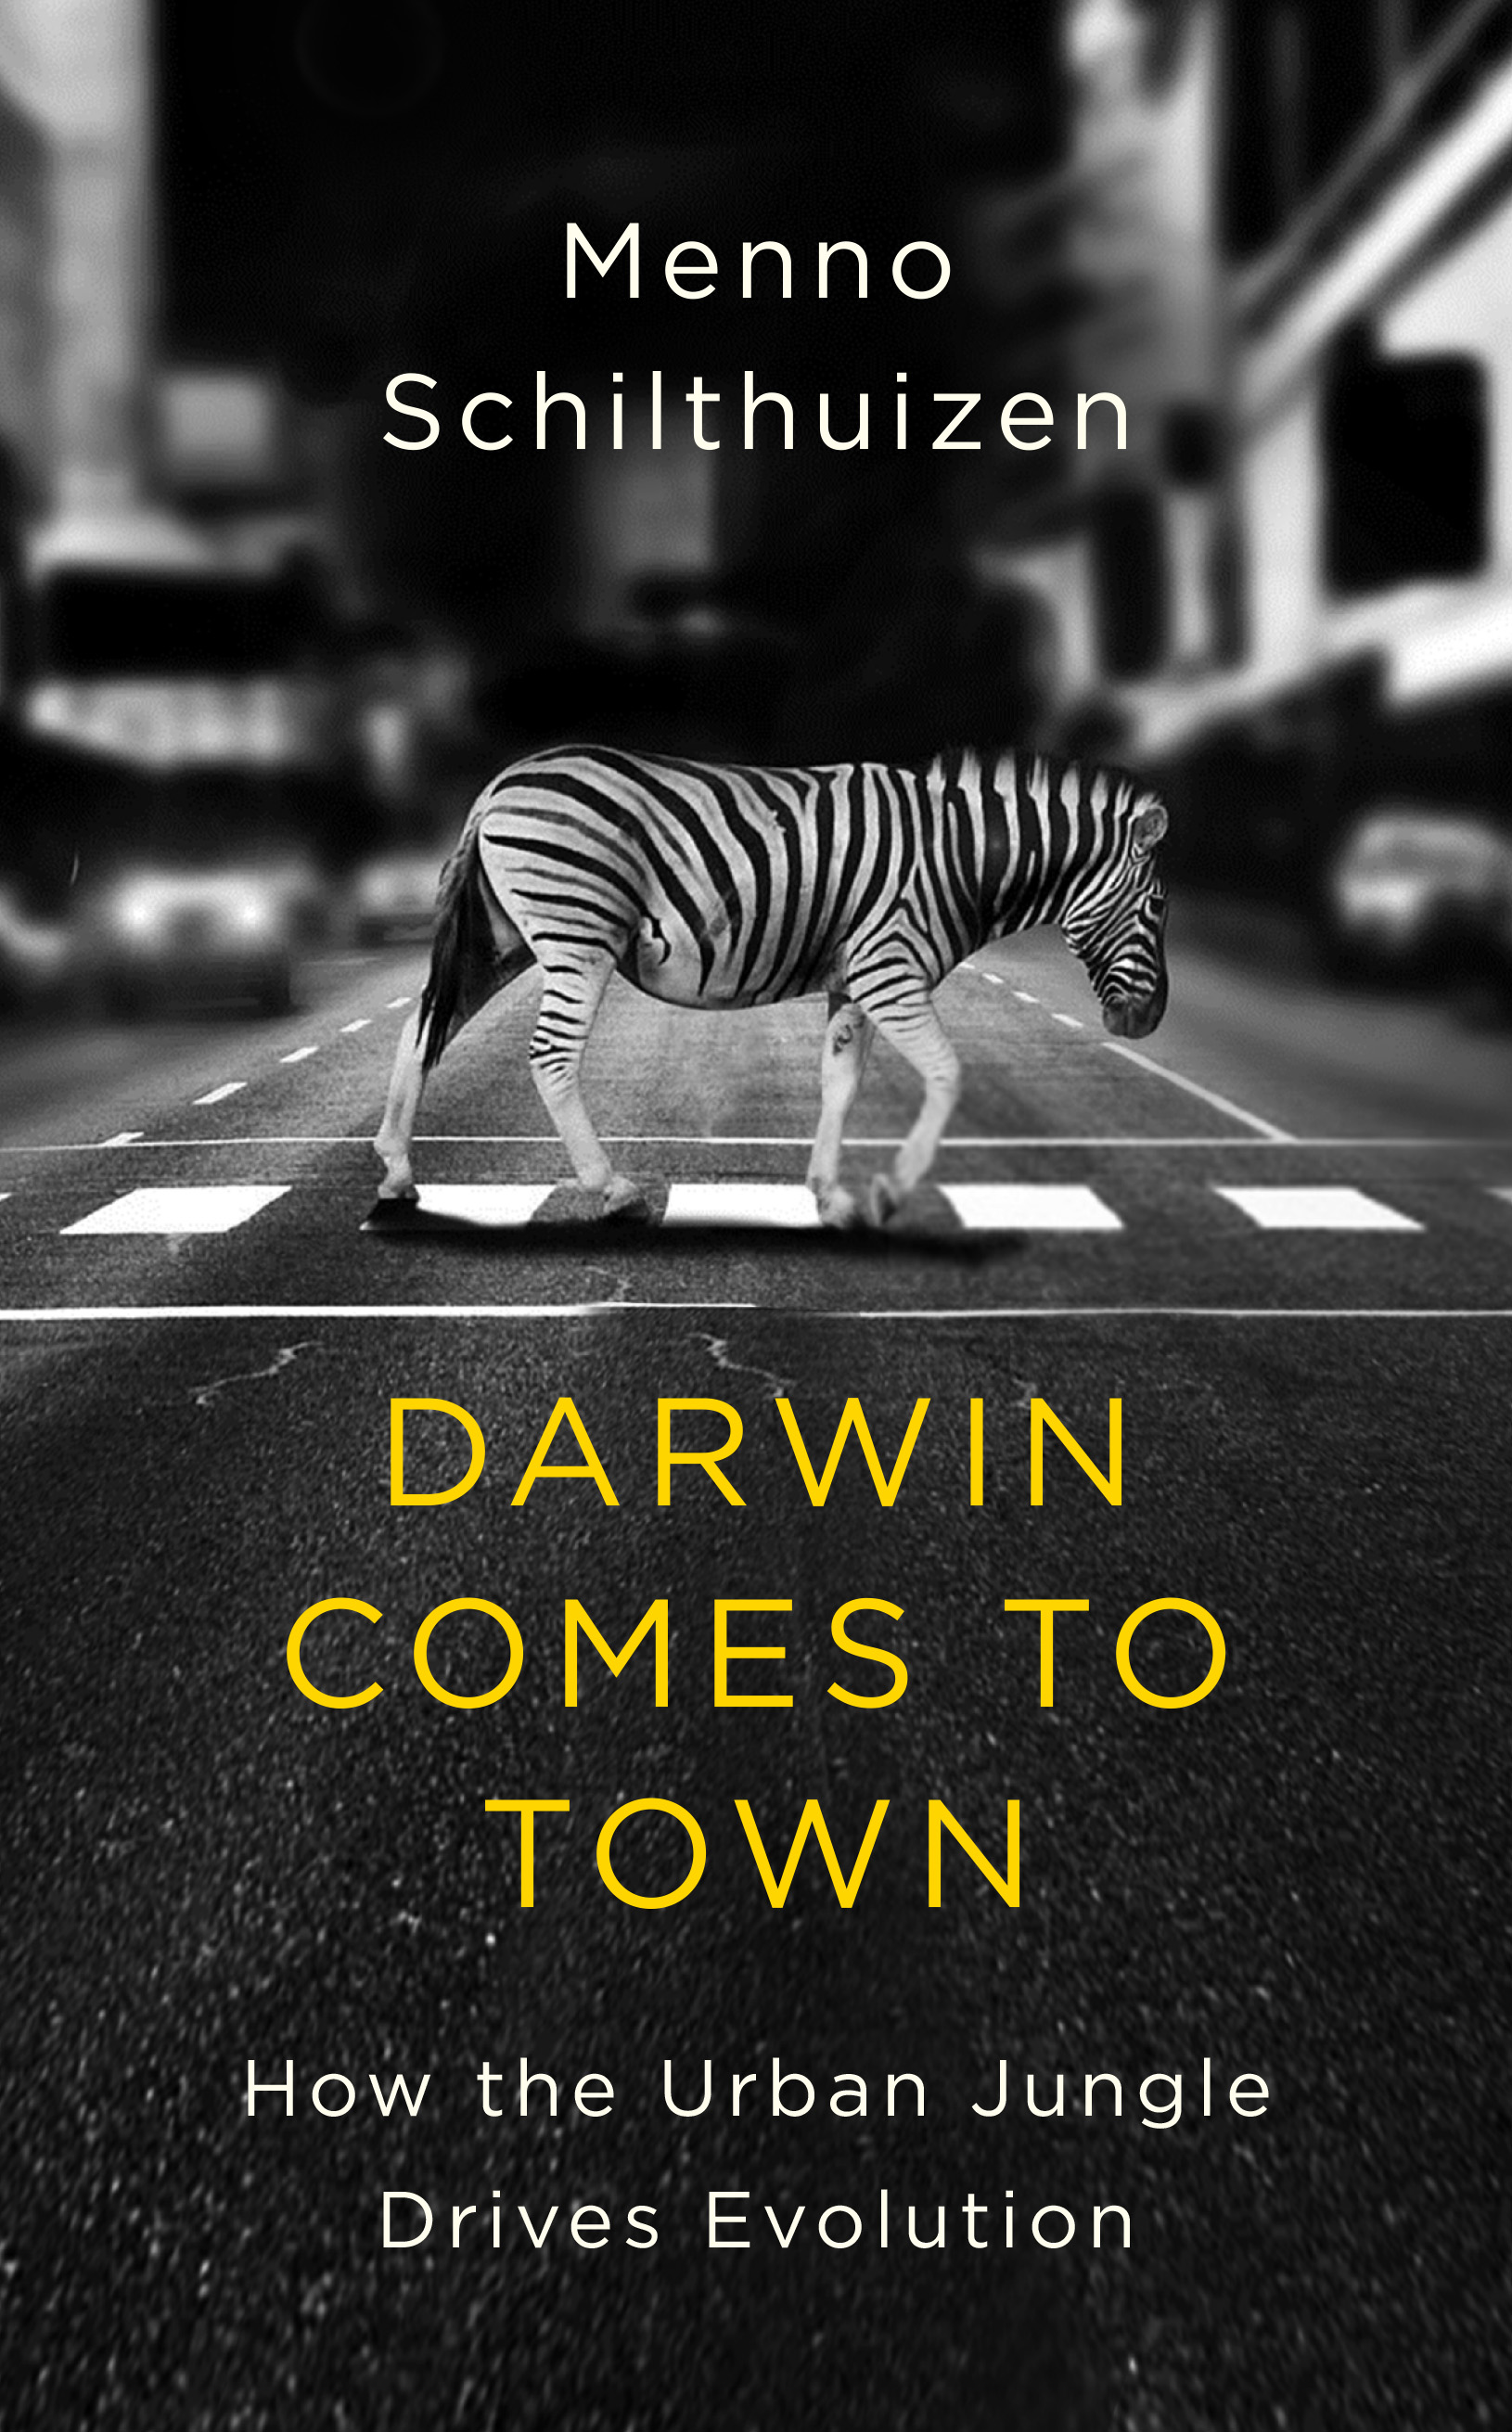 darwin comes to town 5-2.jpg